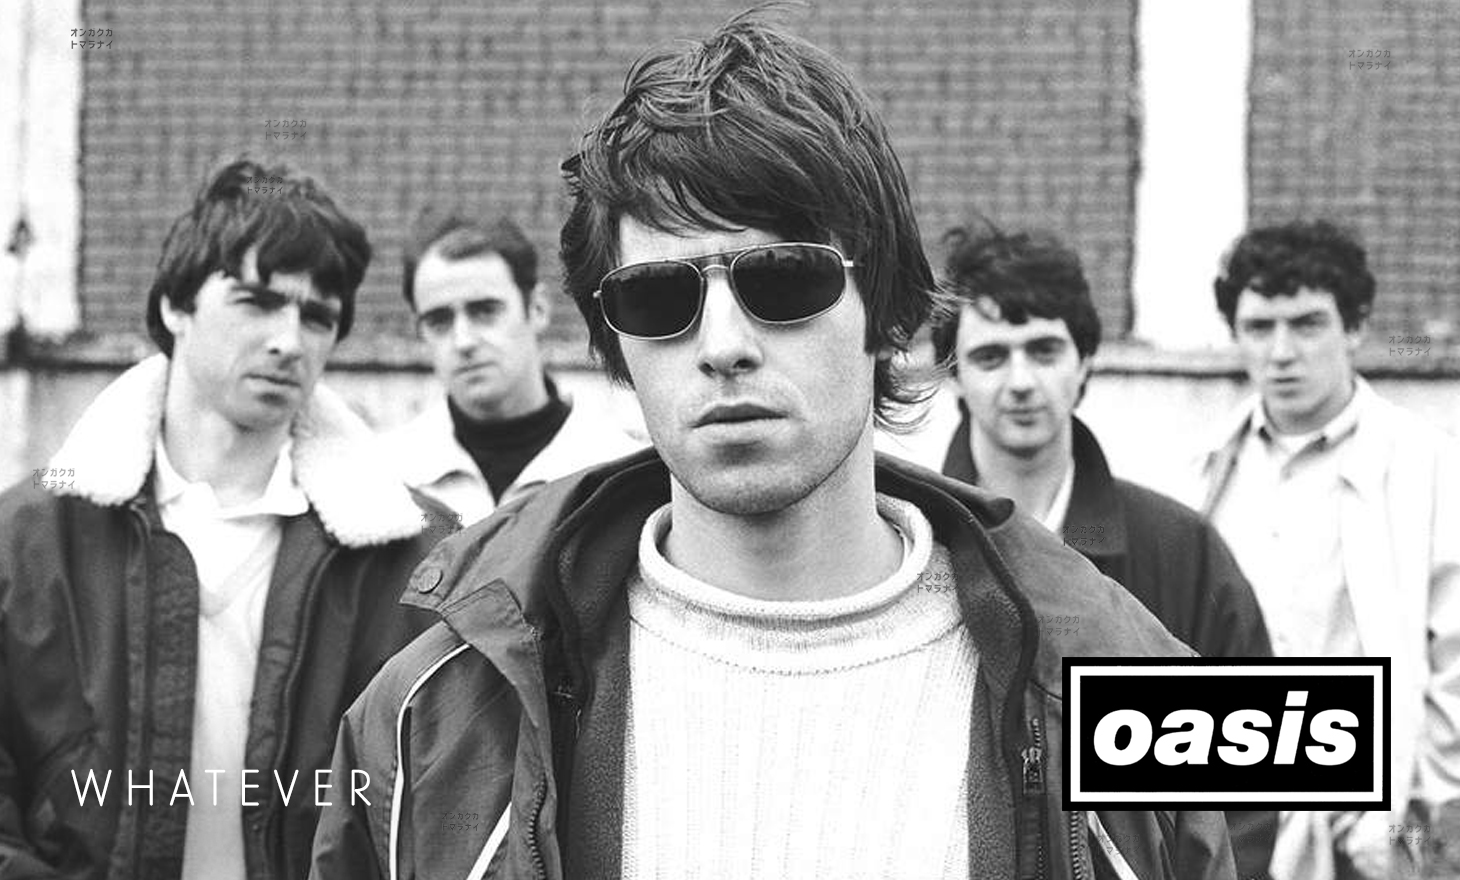 Oasis : Whatever